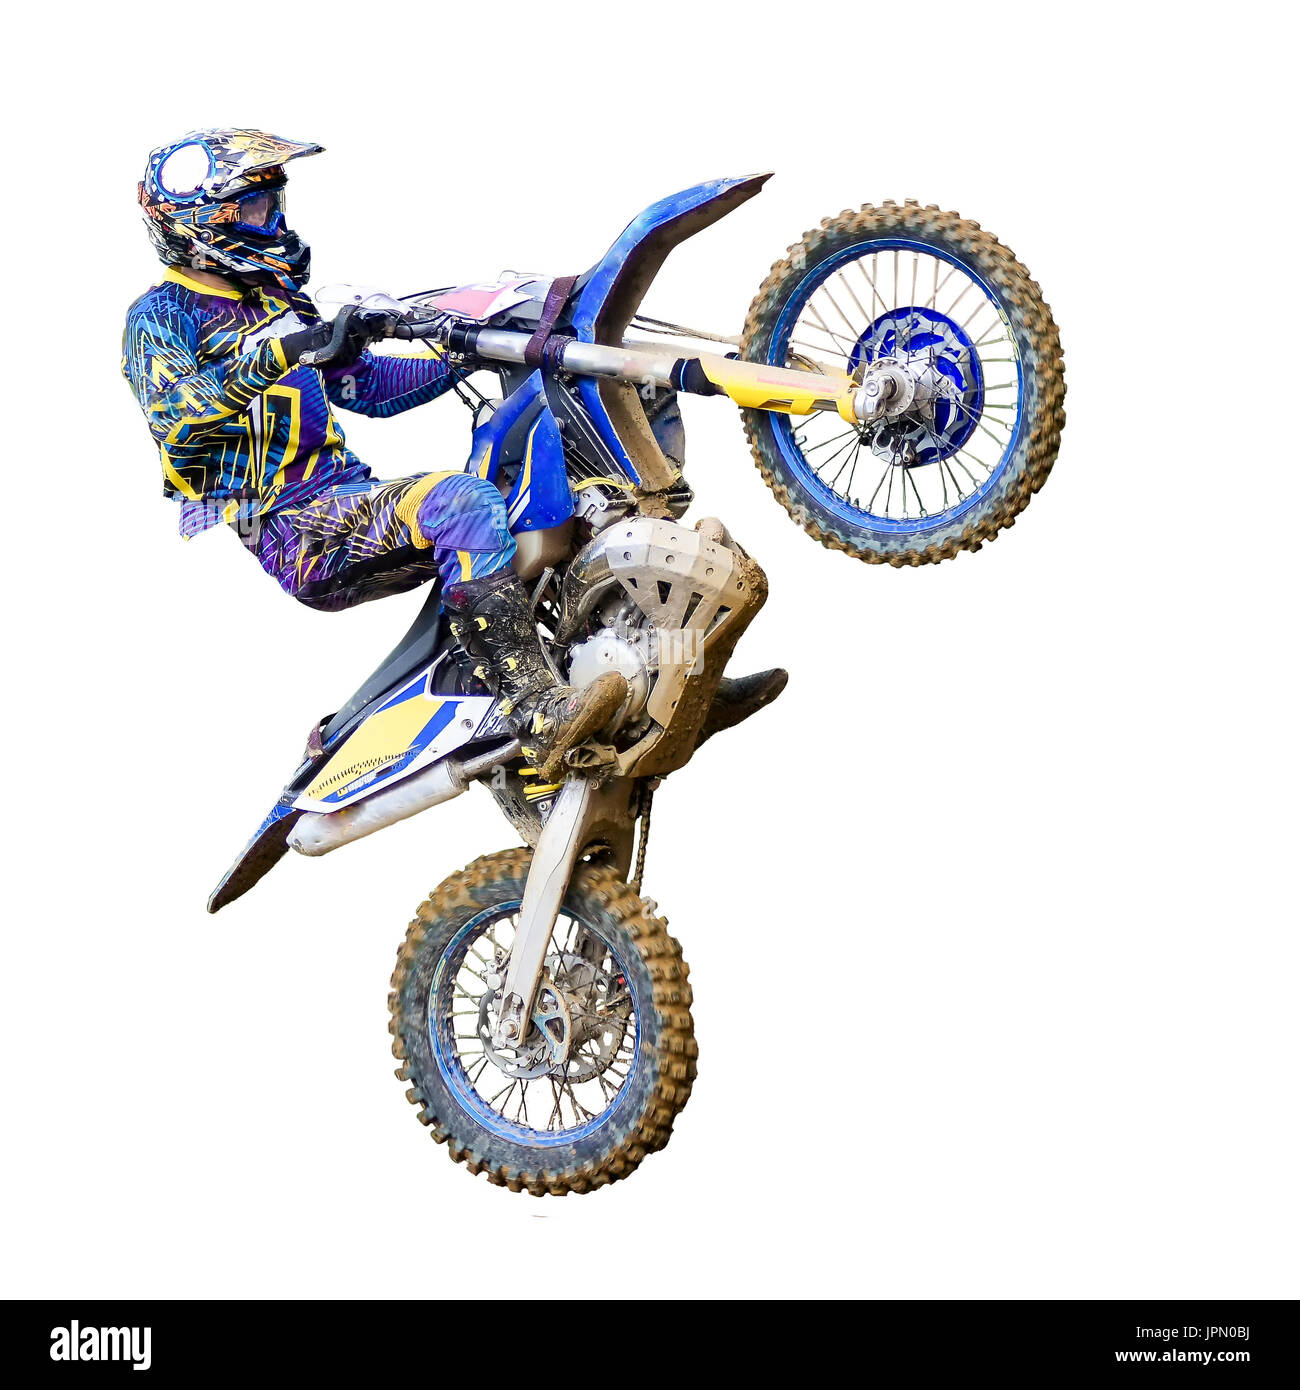 Moto Cross Rider Immagini E Fotos Stock Alamy